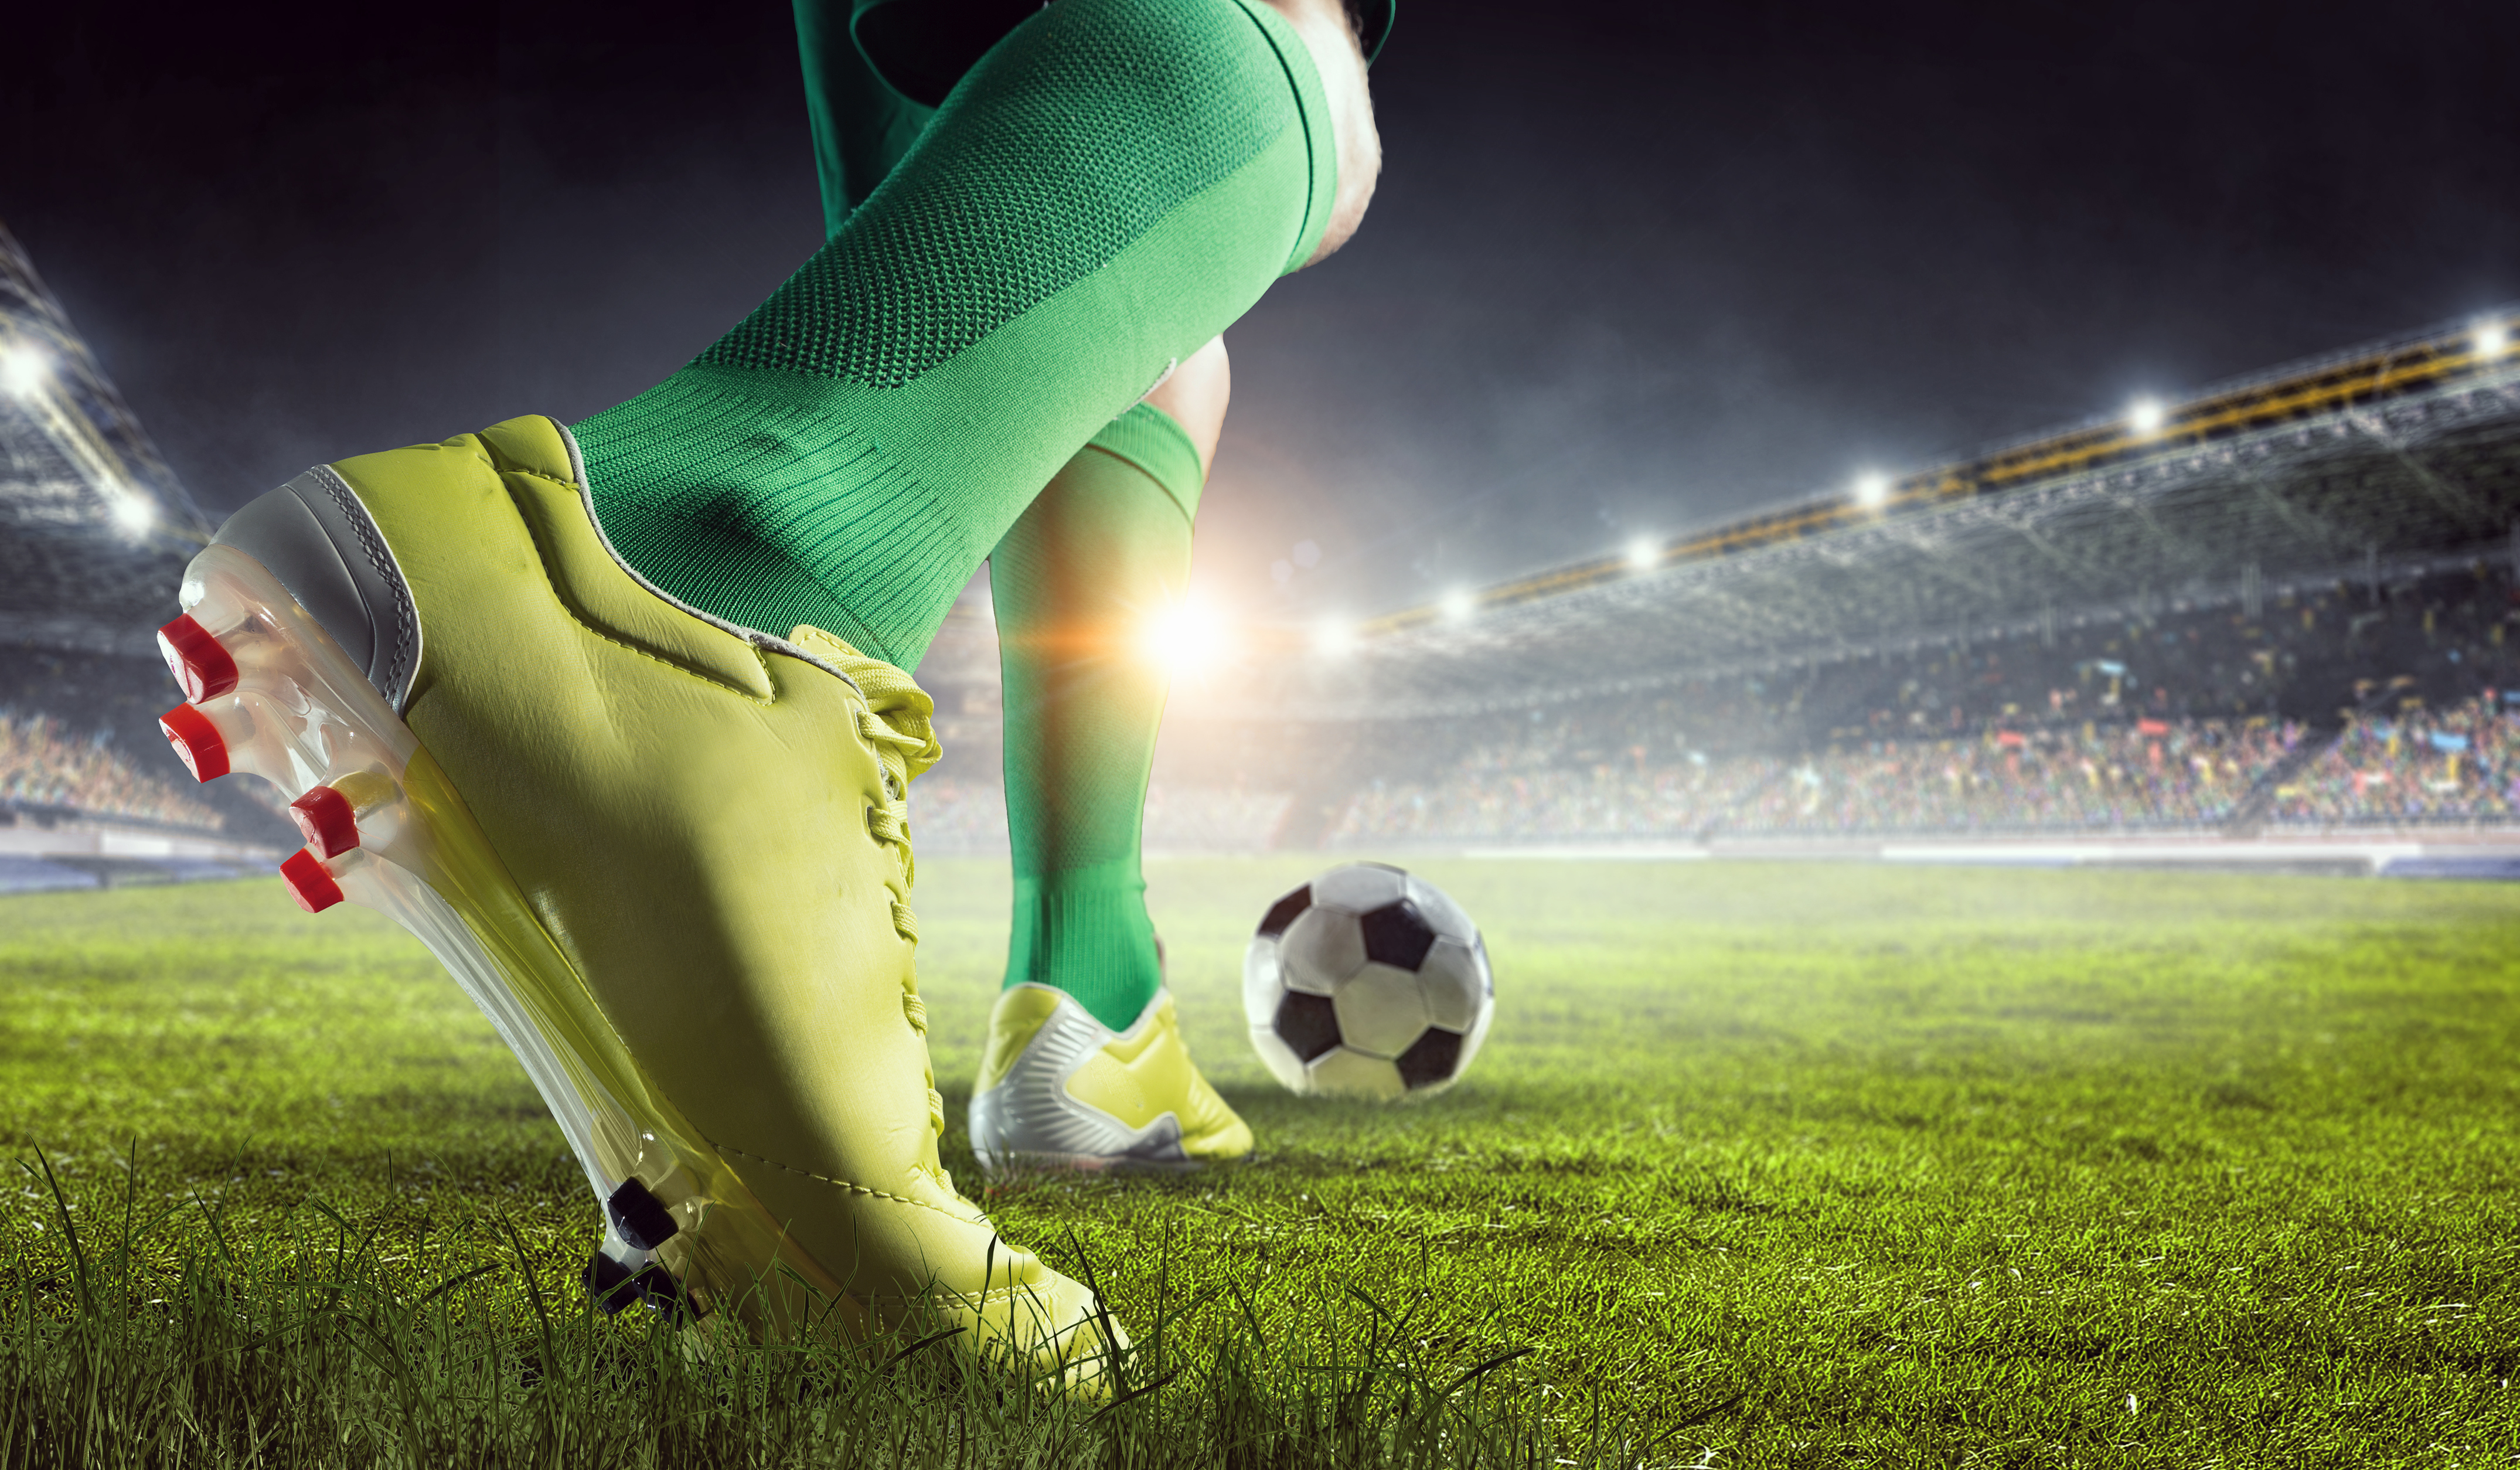 iStock-684987978 Extra time! Leadership and lessons from sport